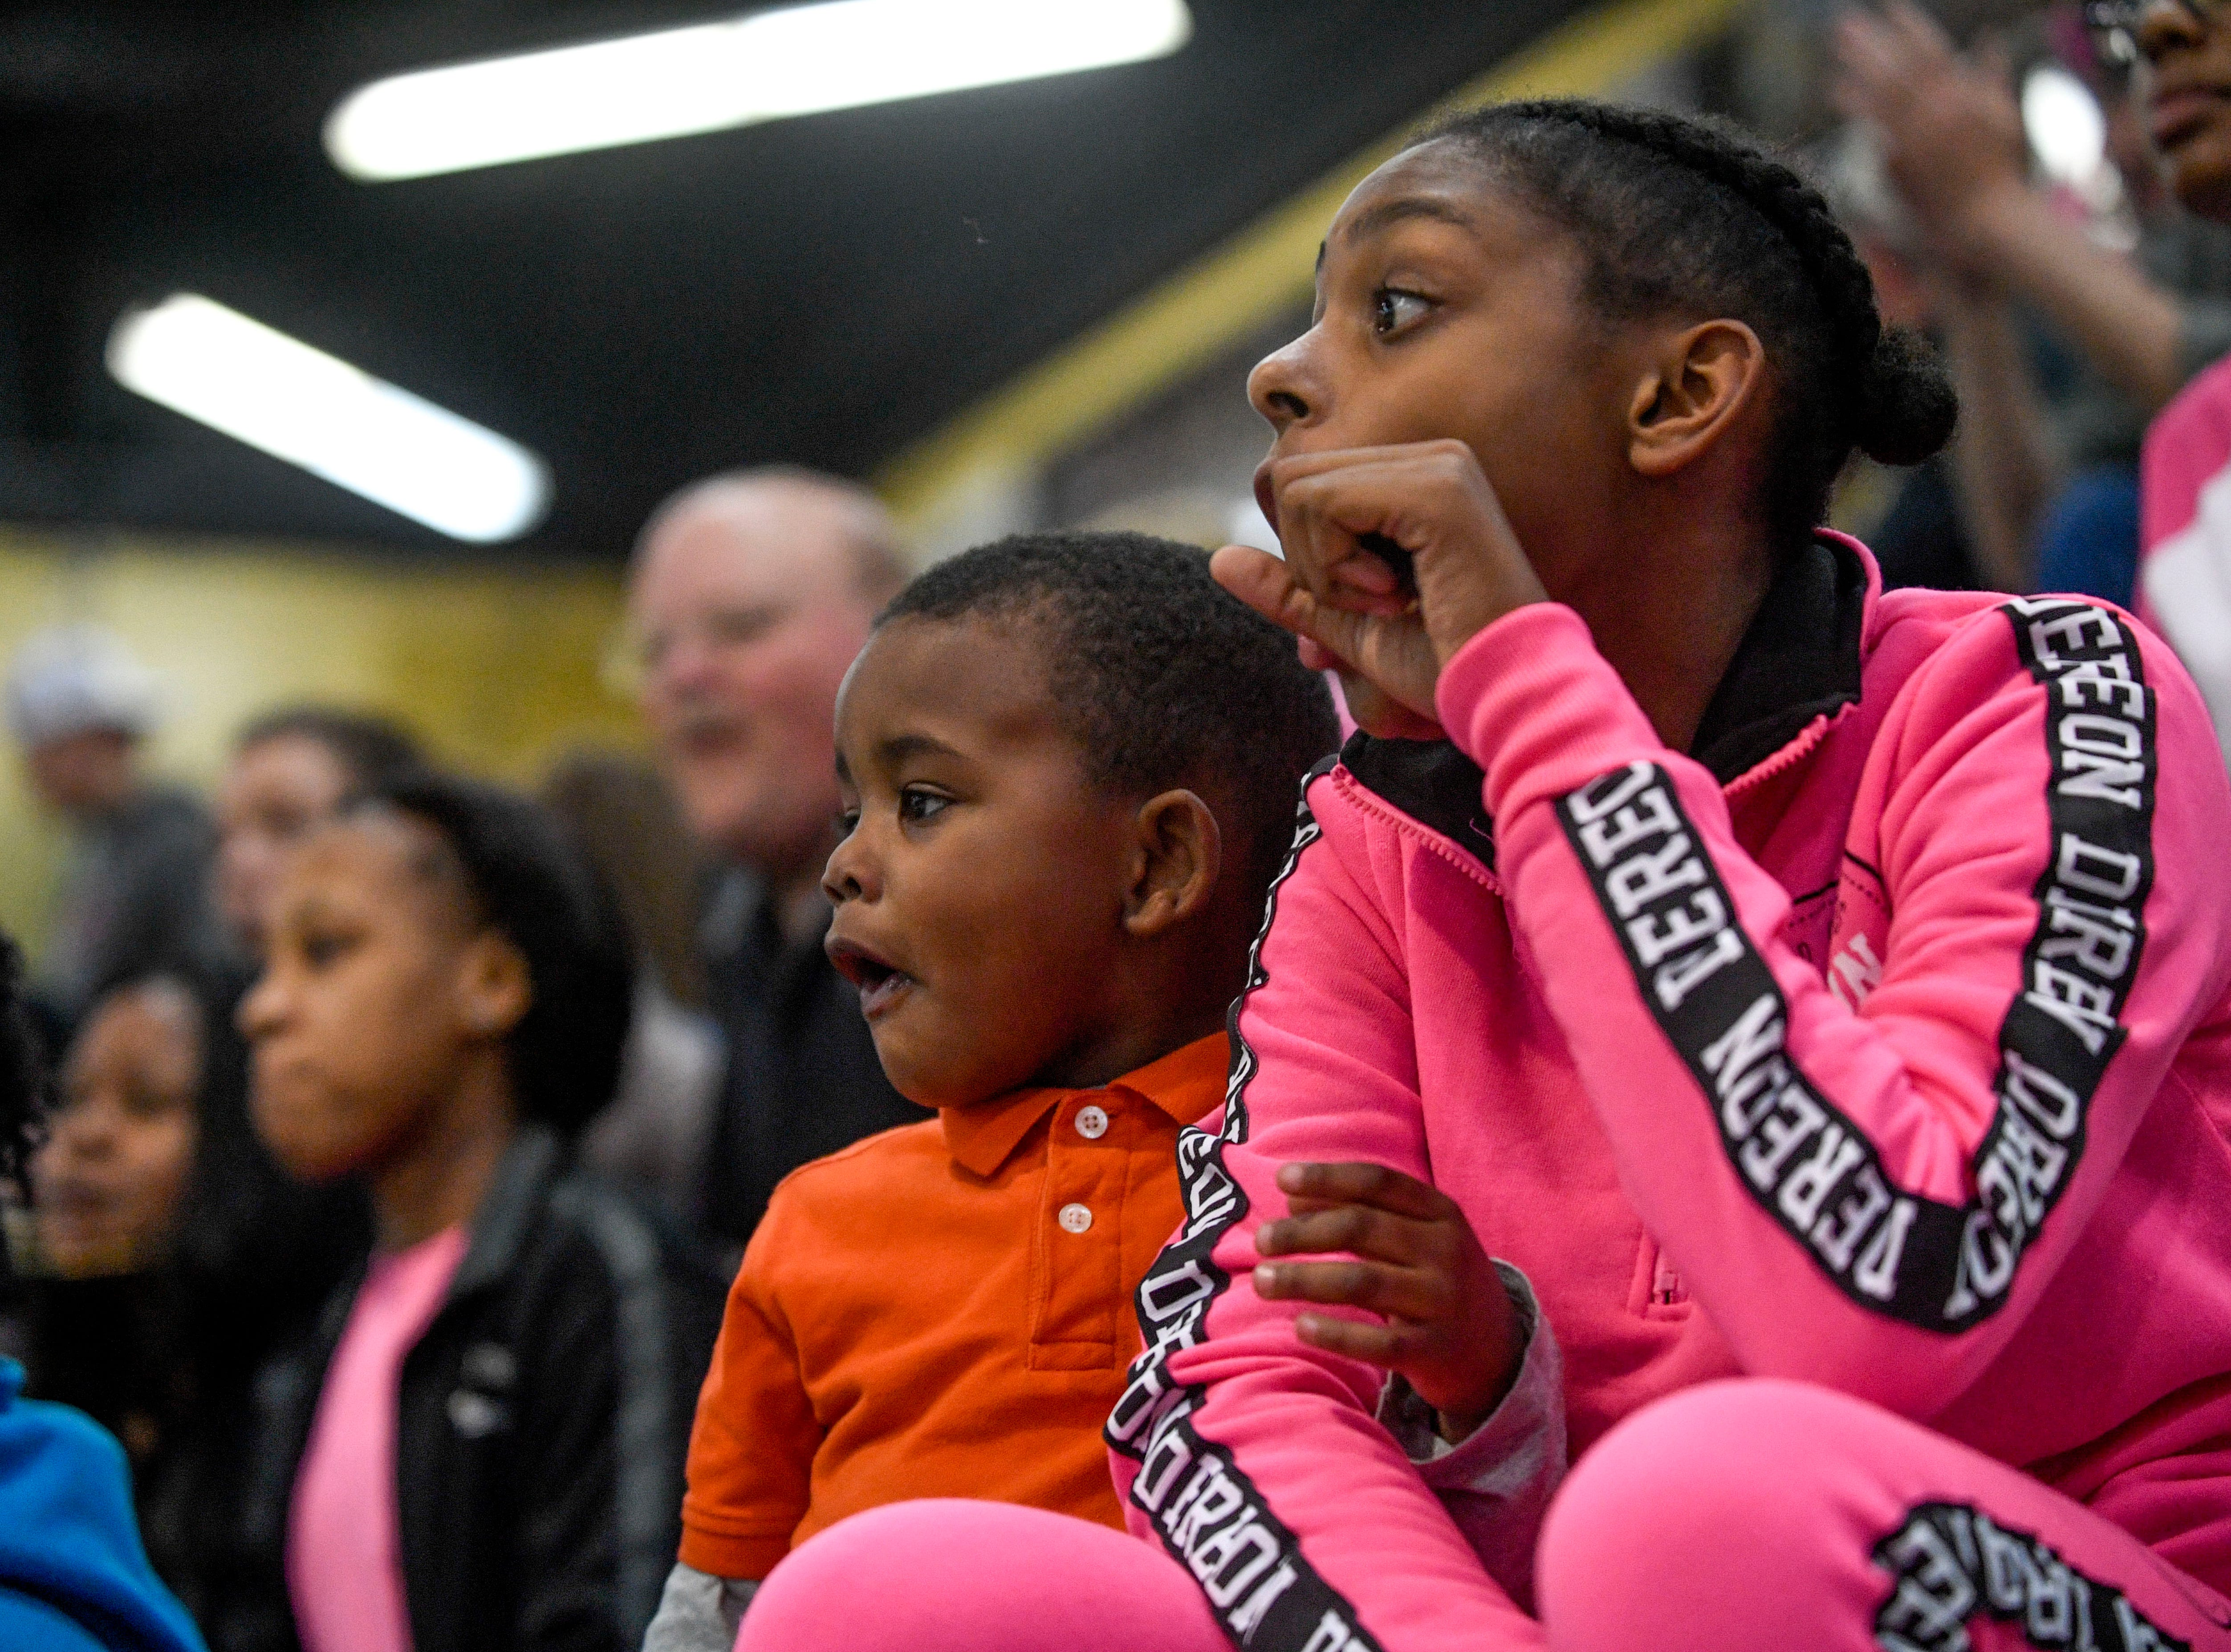 Peabody fans Layten Tucker, 3, left, and Khalia Vanburen, 12, right, react after a fan makes a half court shot during half time in a TSSAA basketball game between Peabody and Gibson County at Peabody High School in Trenton, Tenn., on Friday, Feb. 8, 2019.